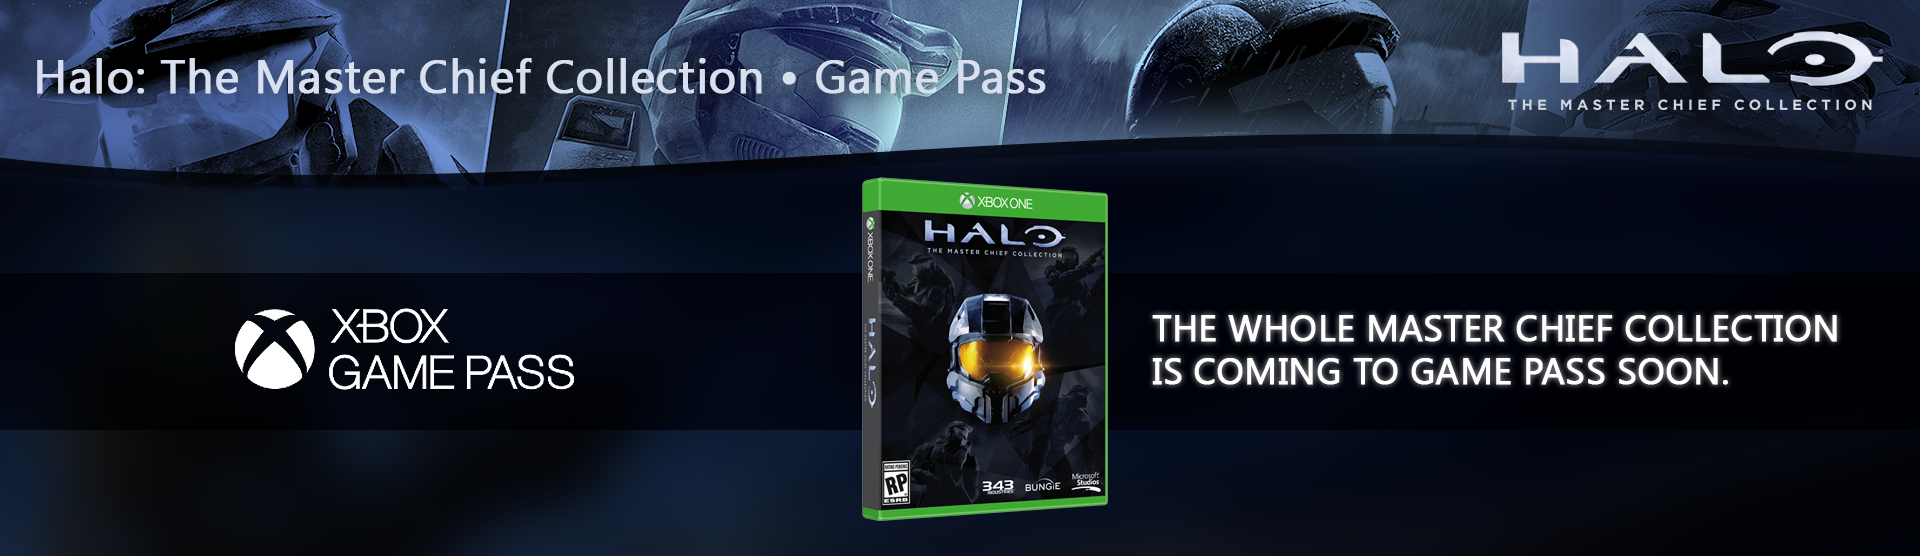 Halo: The Master Chief Collection V2 0 |OT| There Are Those That